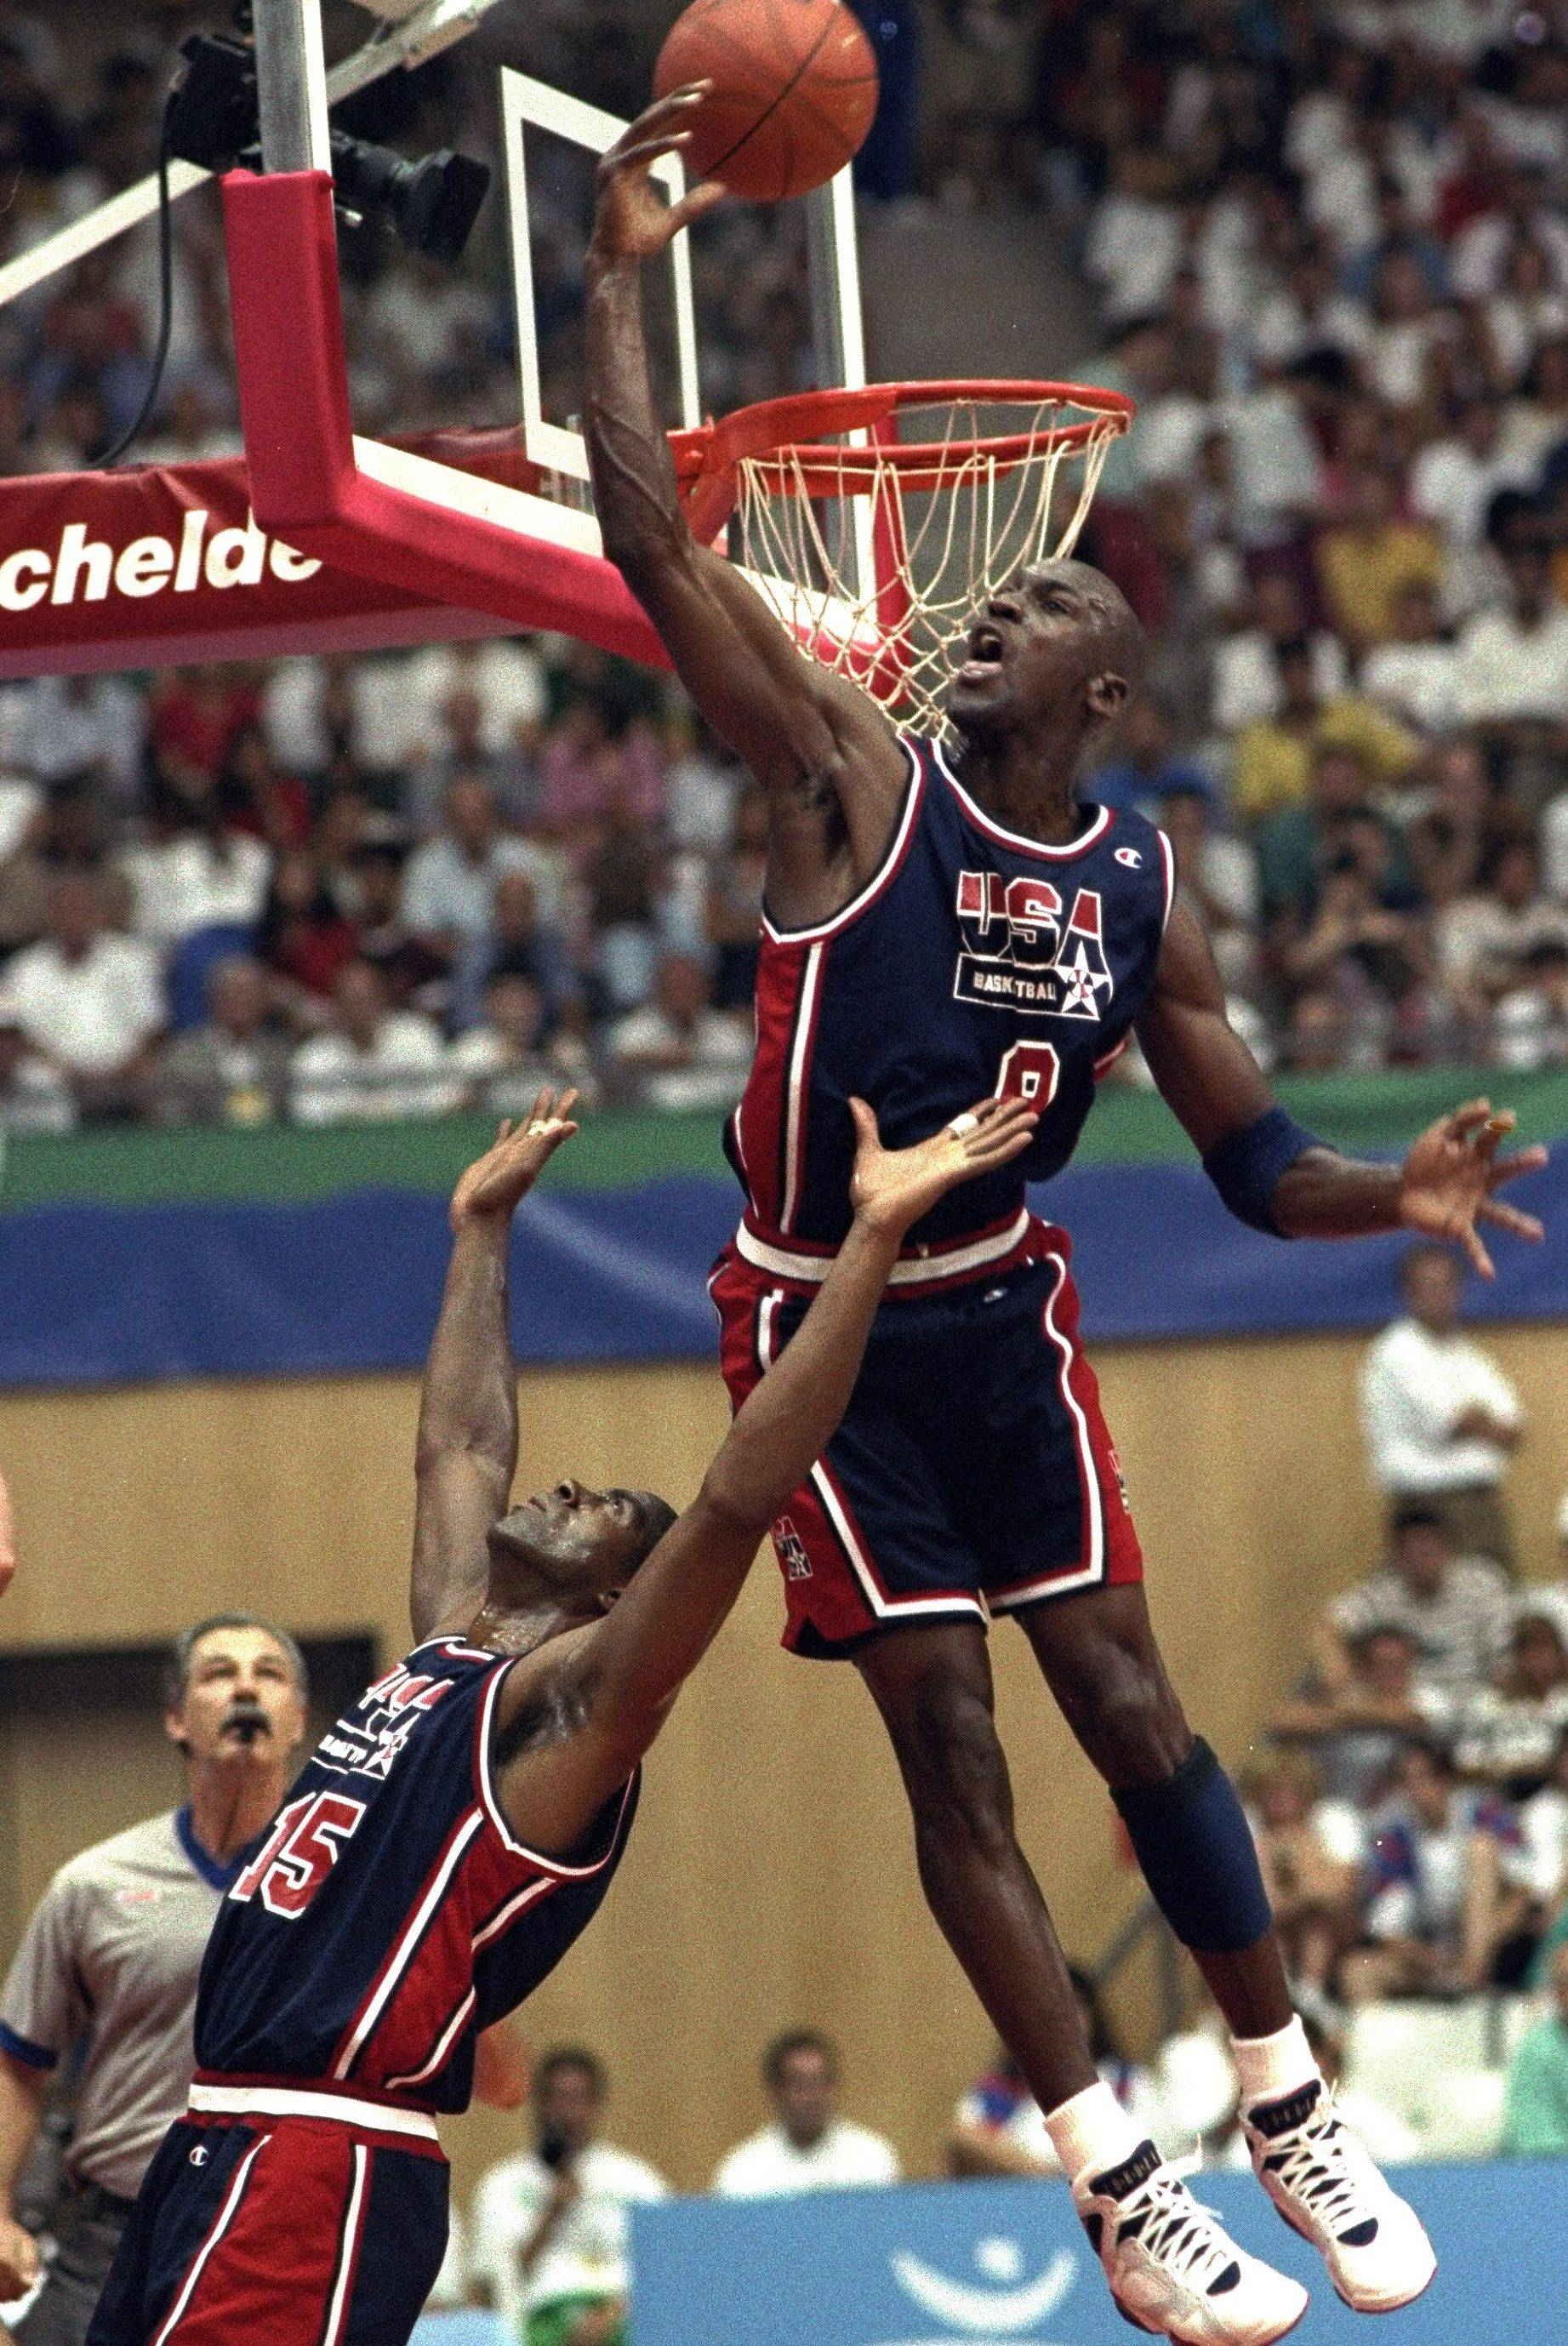 USA's Michael Jordan sails high above teammate Magic Johnson, knocking away a shot during the first half of their preliminary-round basketball game with Croatia at the Summer Olympics in Barcelona in 1992.